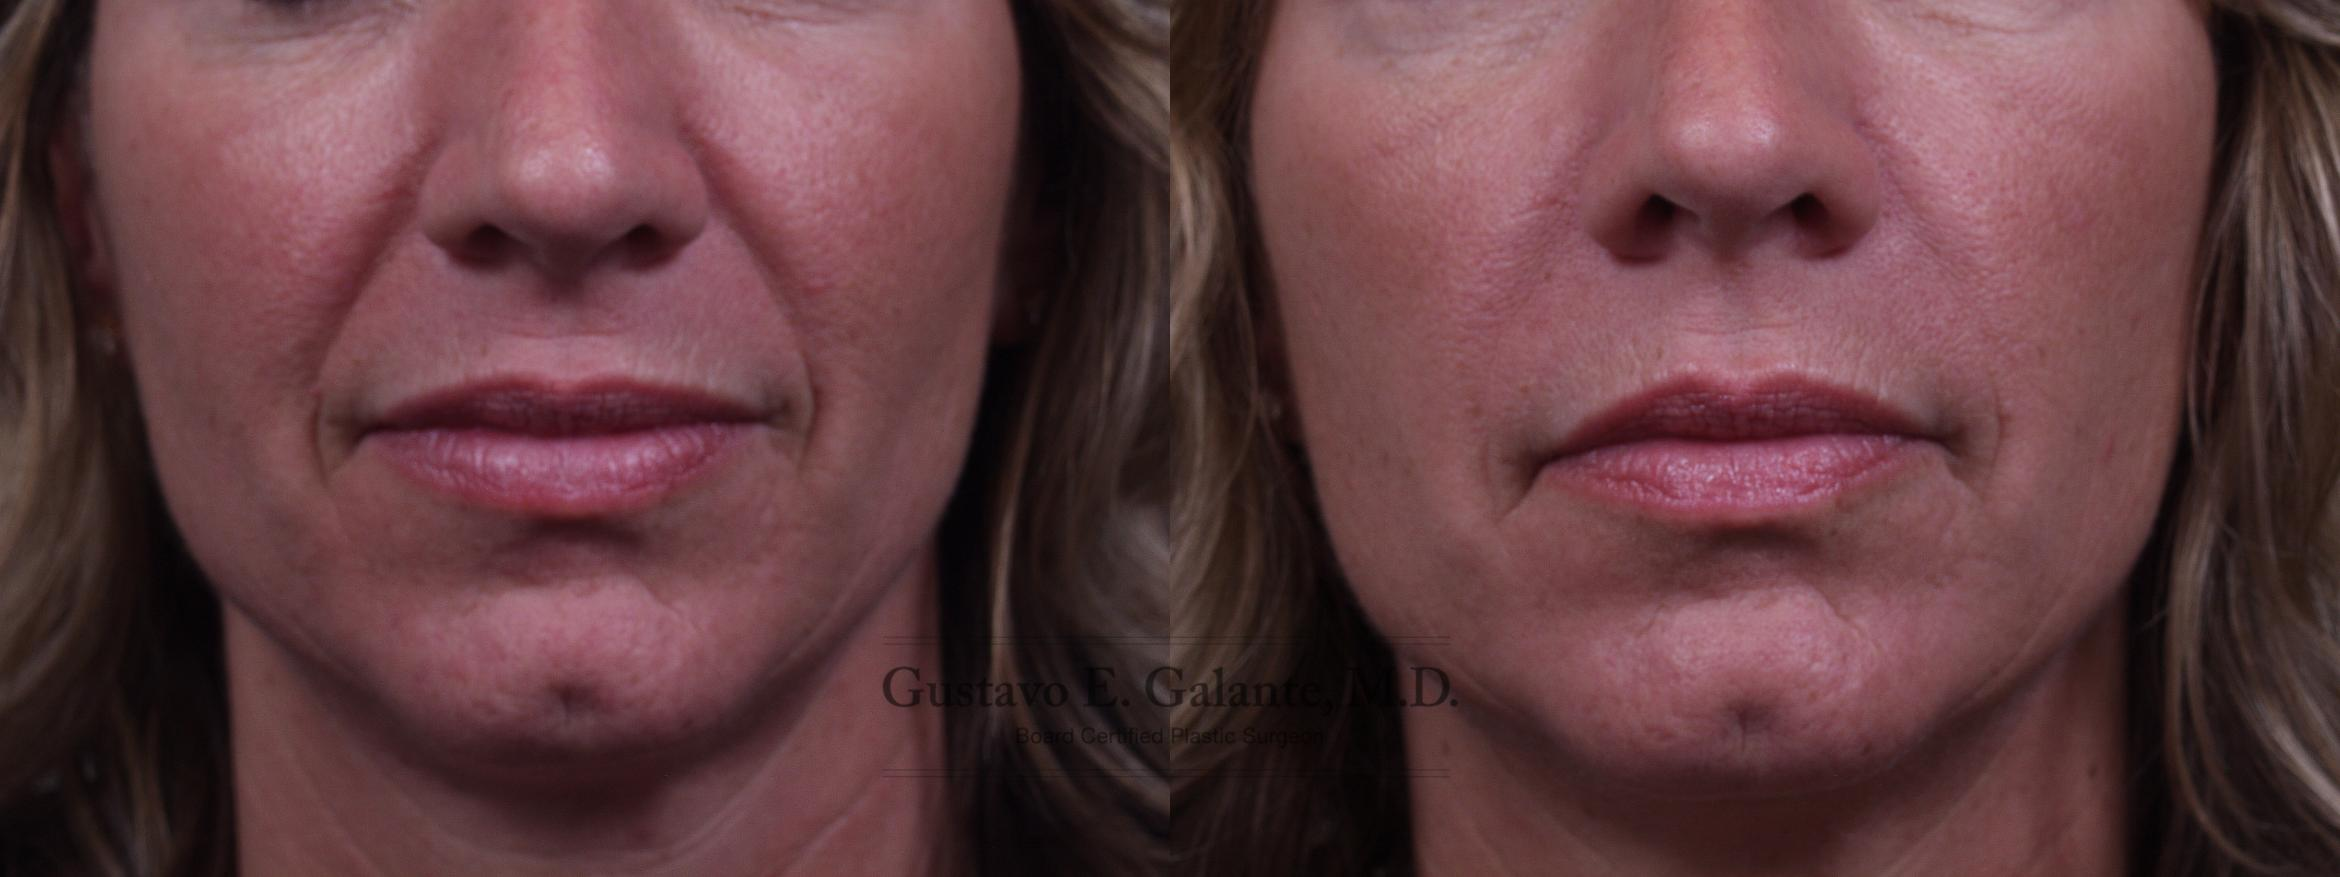 BOTOX® Cosmetic Case 120 Before & After View #1 | Schererville, IN | Gustavo E. Galante, MD